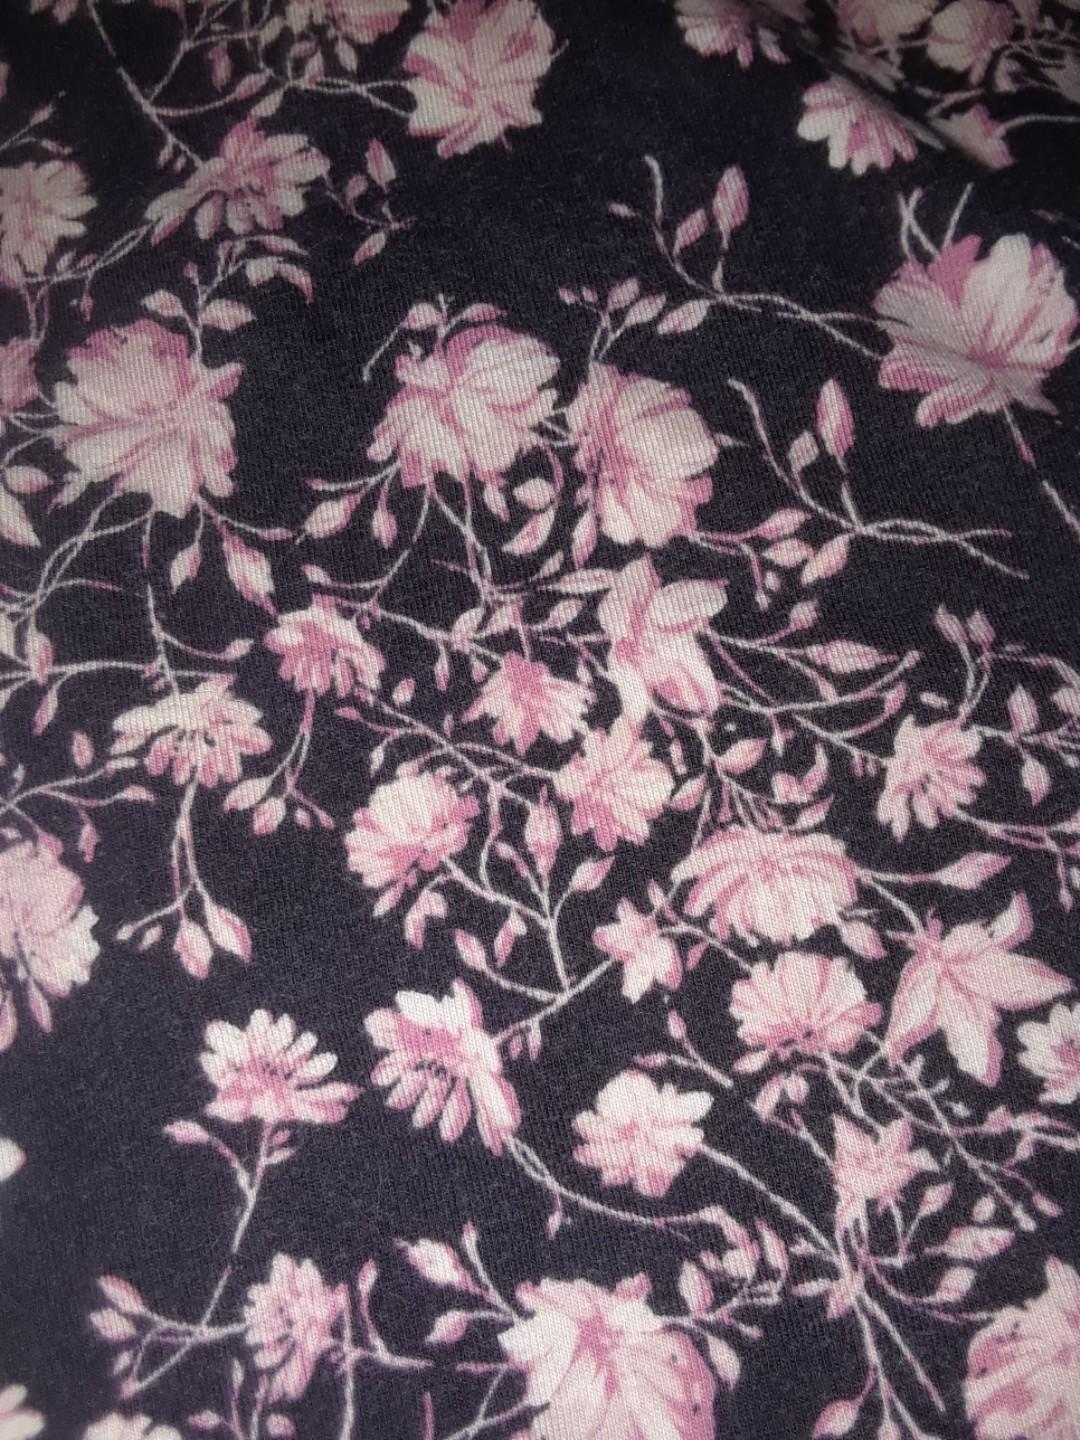 Garage T shirt cherry blossom floral backless cut out XS #SwapCA